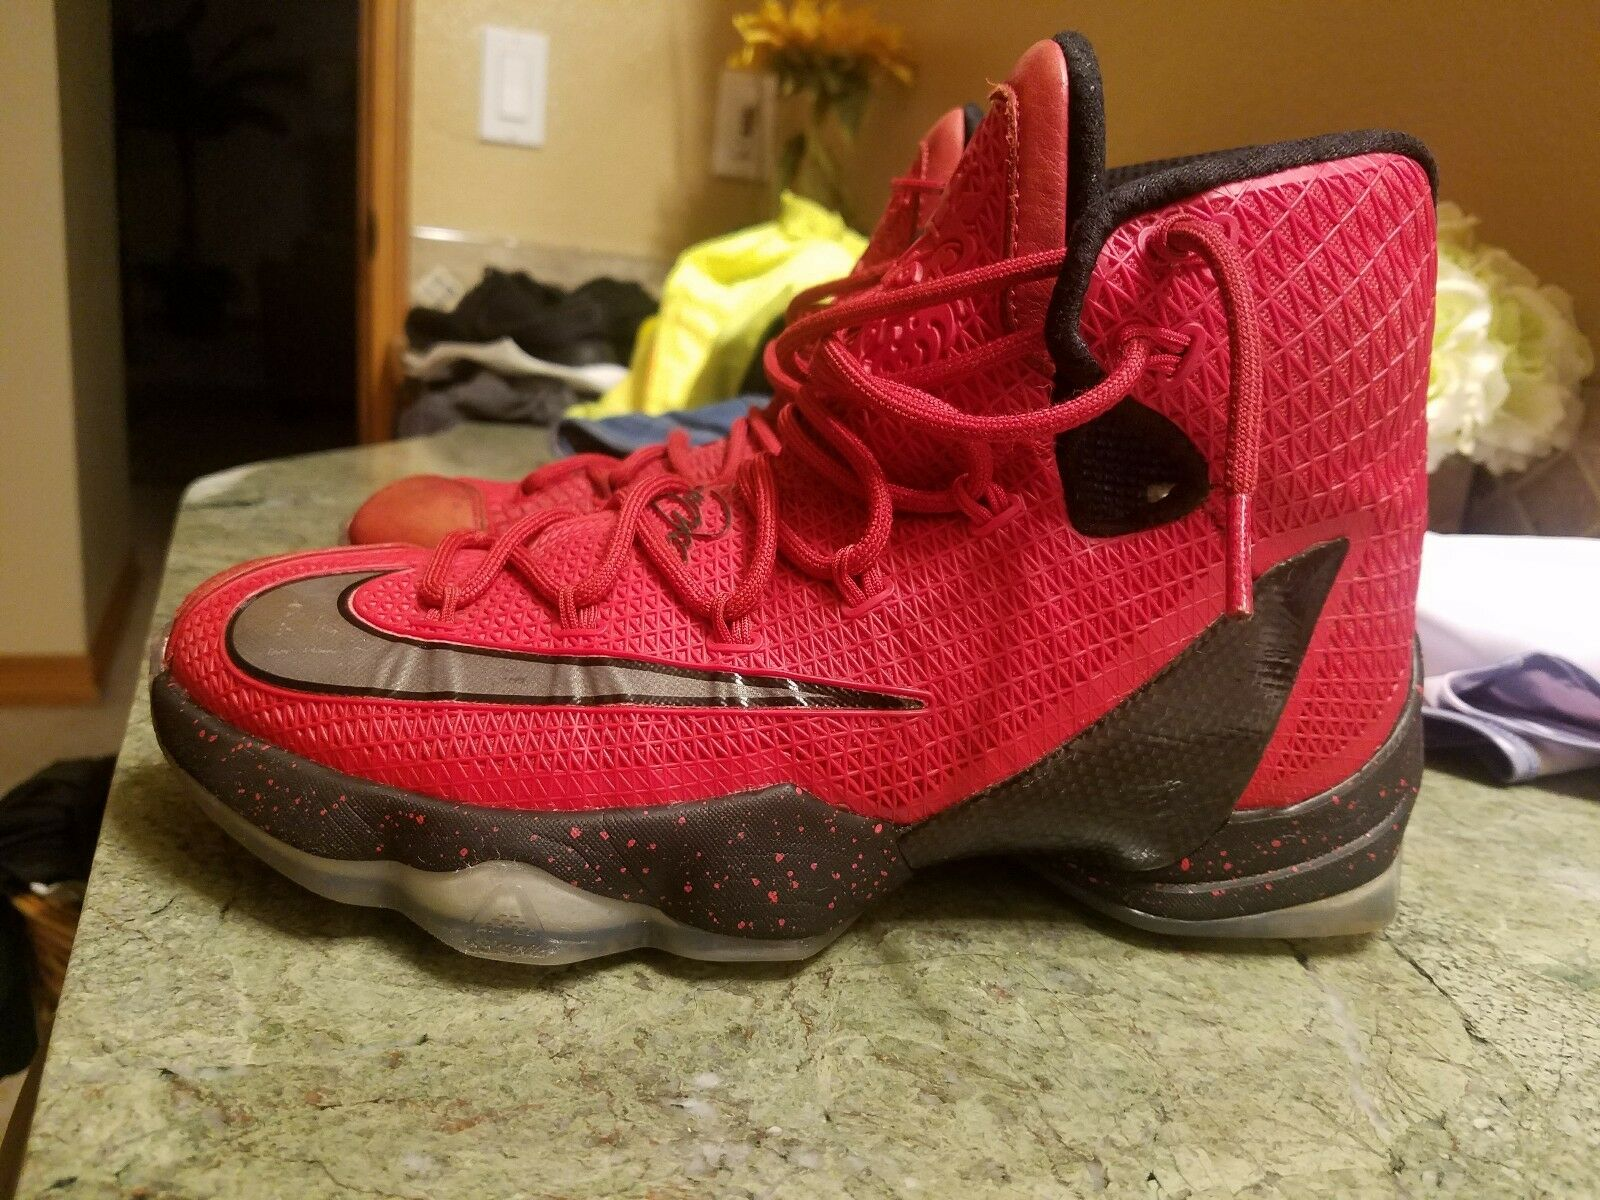 Nike LeBron 13 Elite 831923-606 Red & Black High Top Basketball shoes  7M